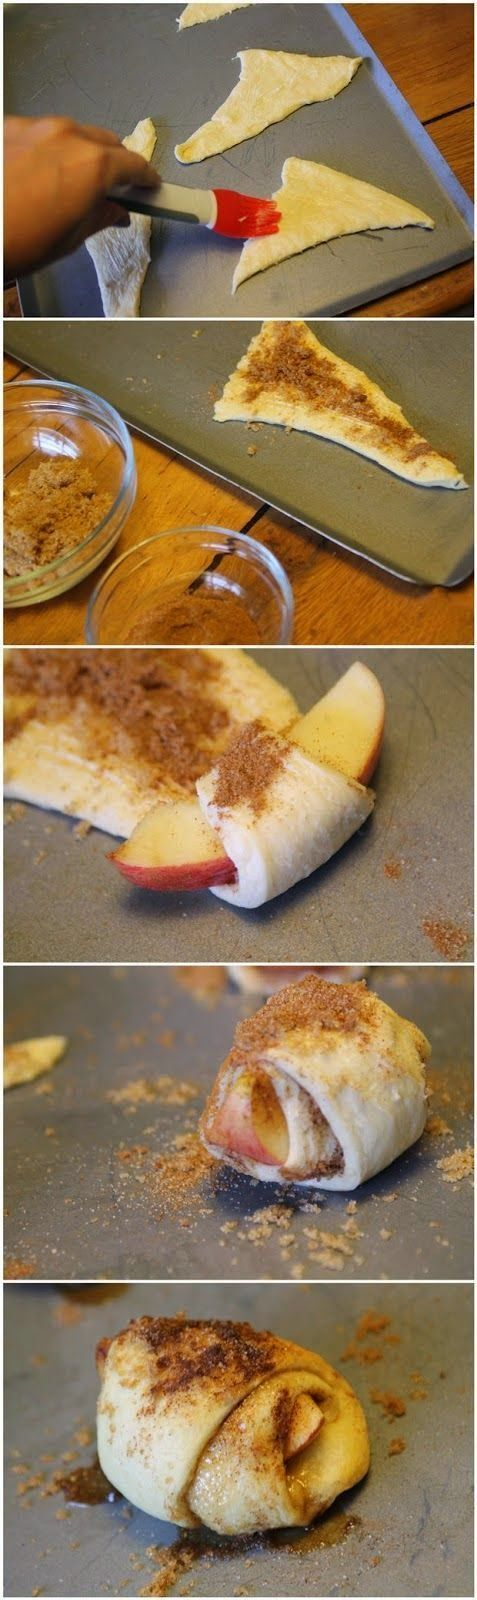 Everyone's collection: Bite Size Apple Pies---- wow--looks easy & delicious!